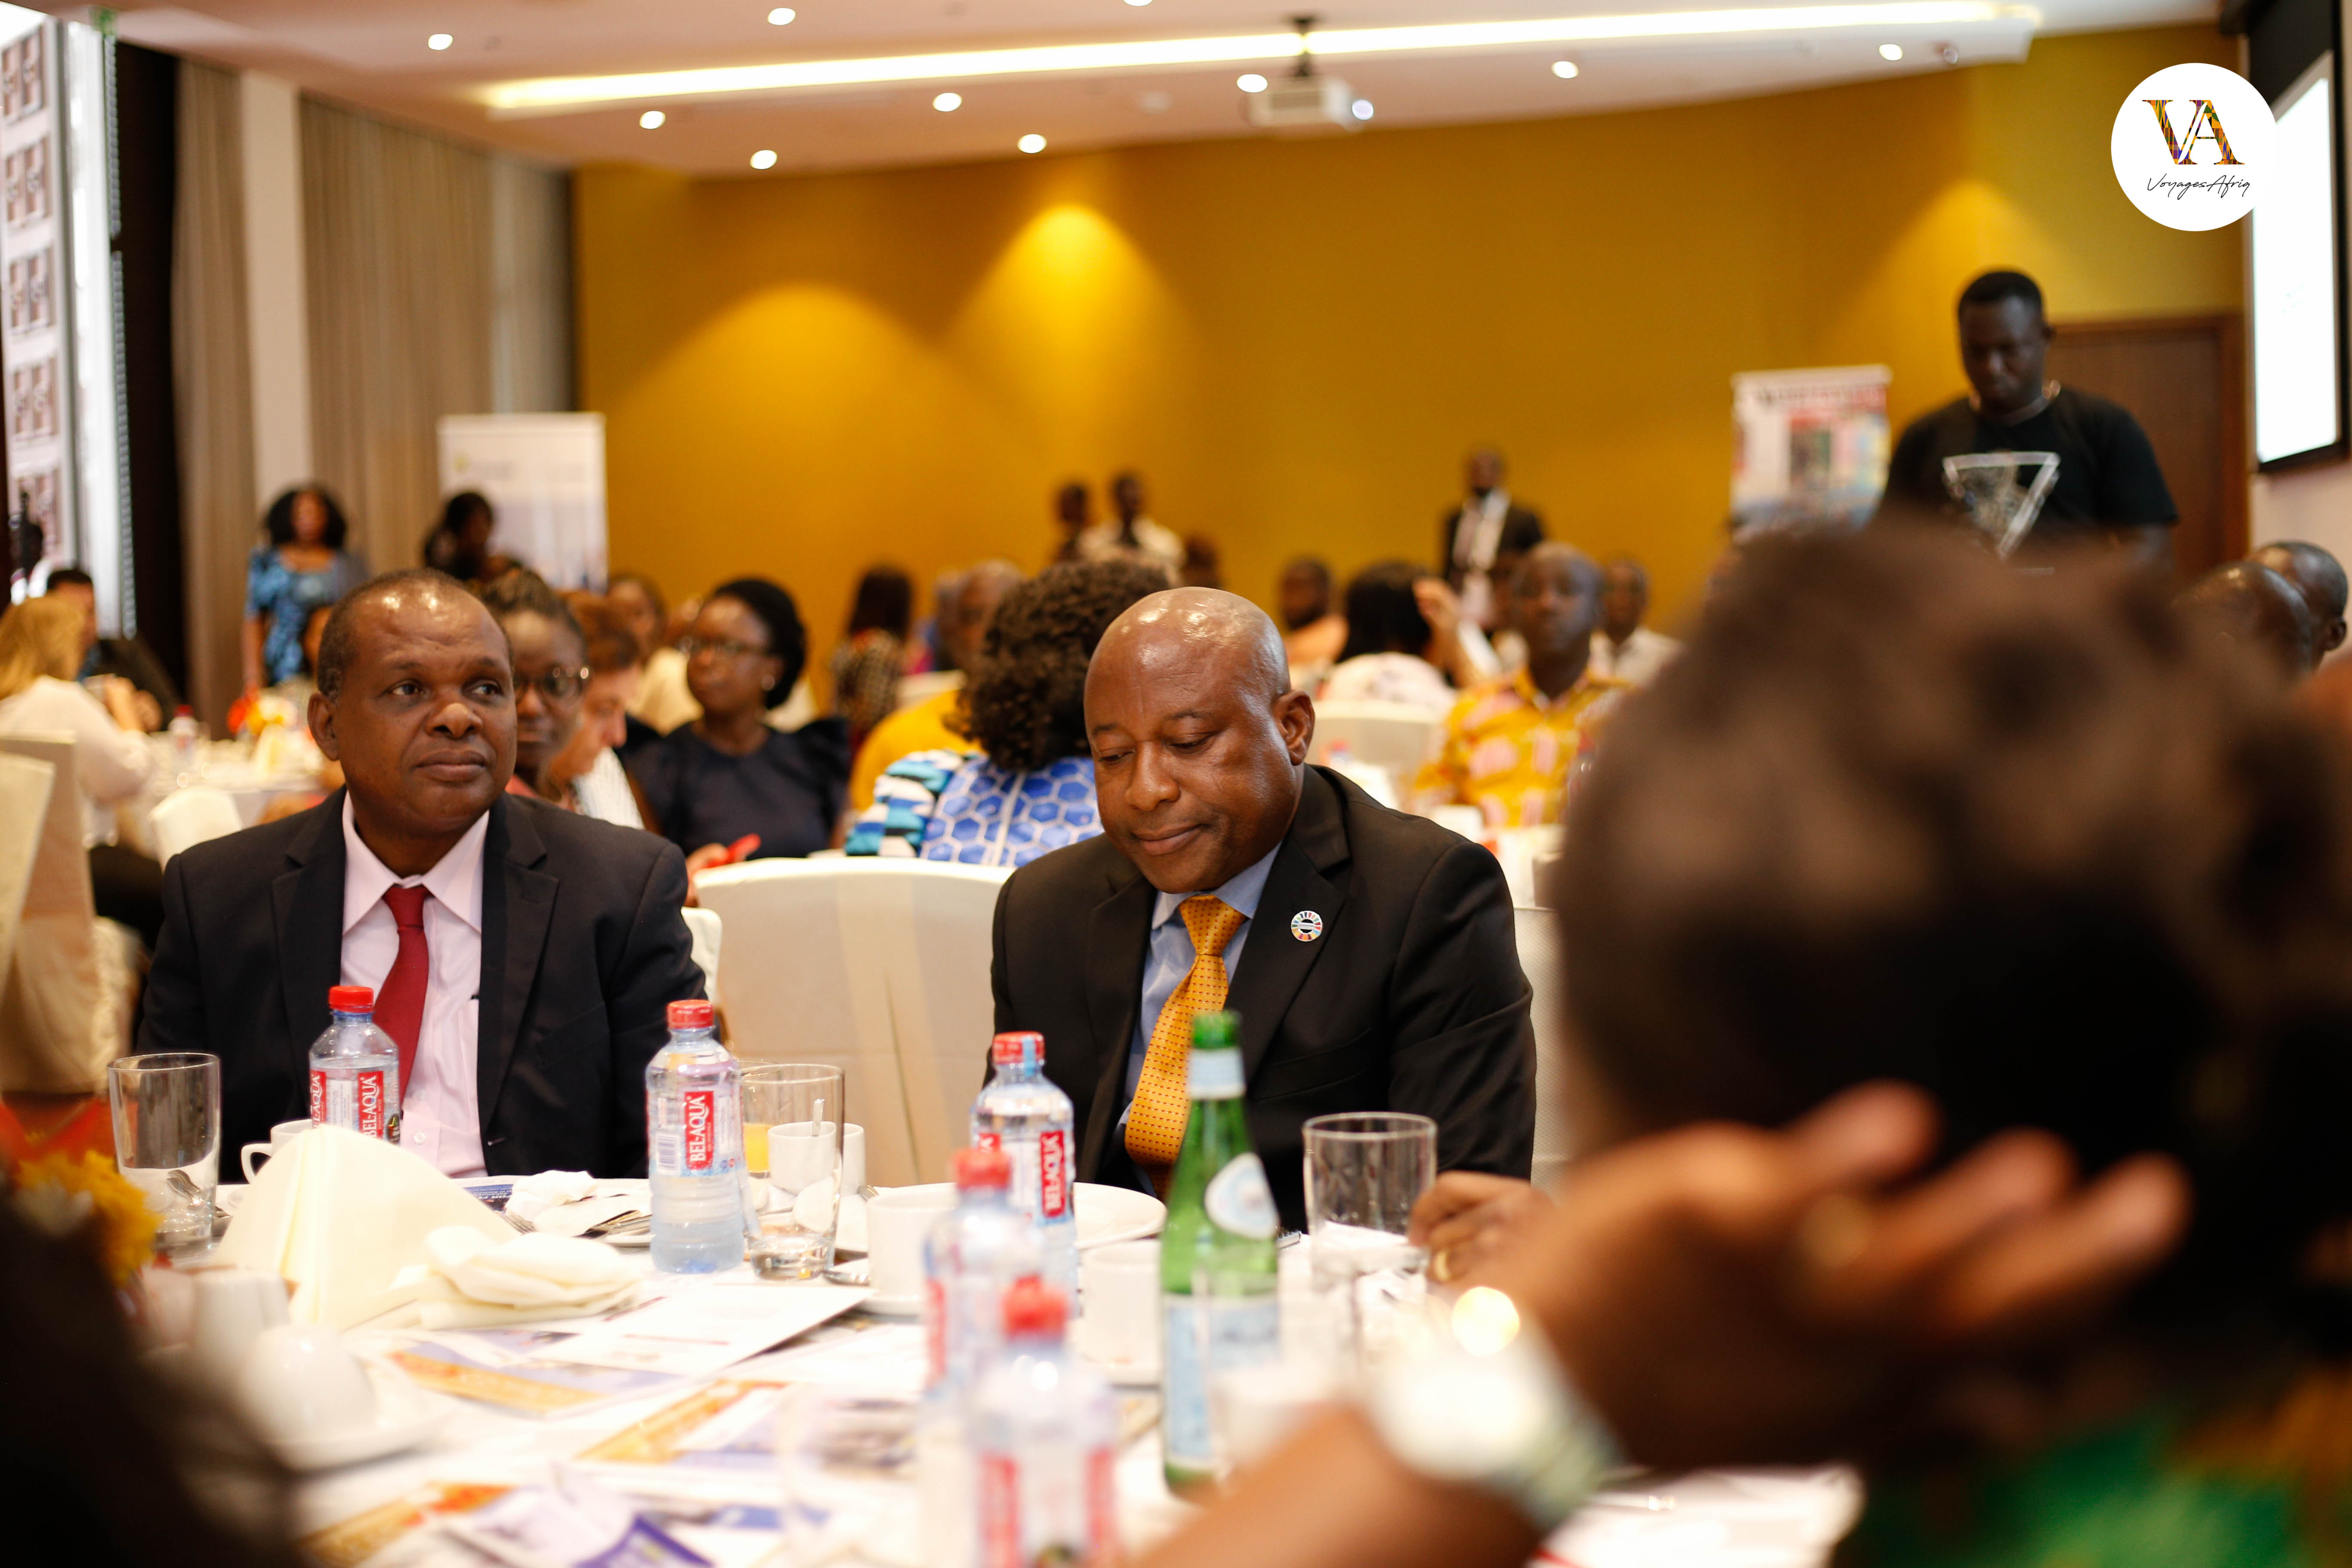 Ghana caps event admissions at 100 as gov't rolls out phase one to ease Covid-19 restrictions